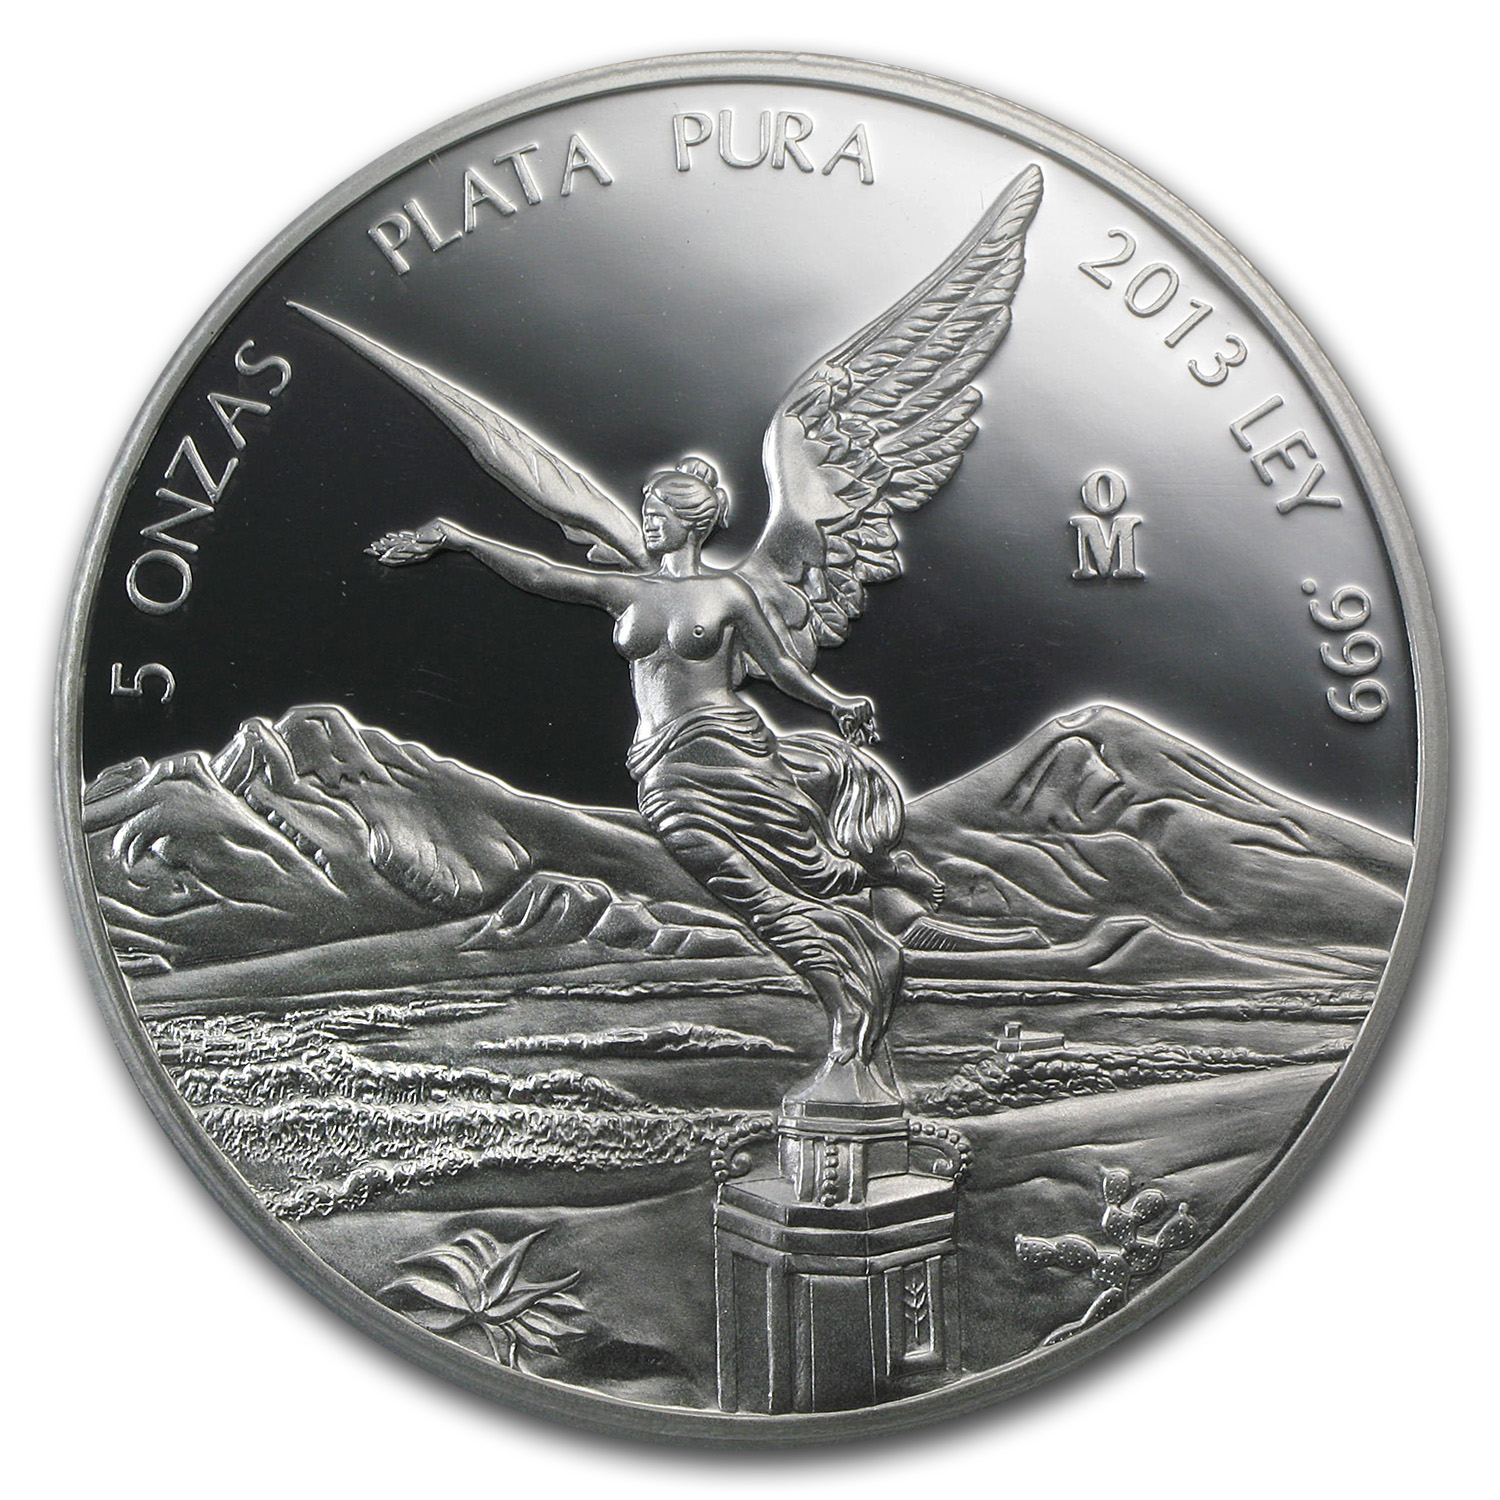 2013 Mexico 5 oz Proof Silver Libertad PR-69 PCGS